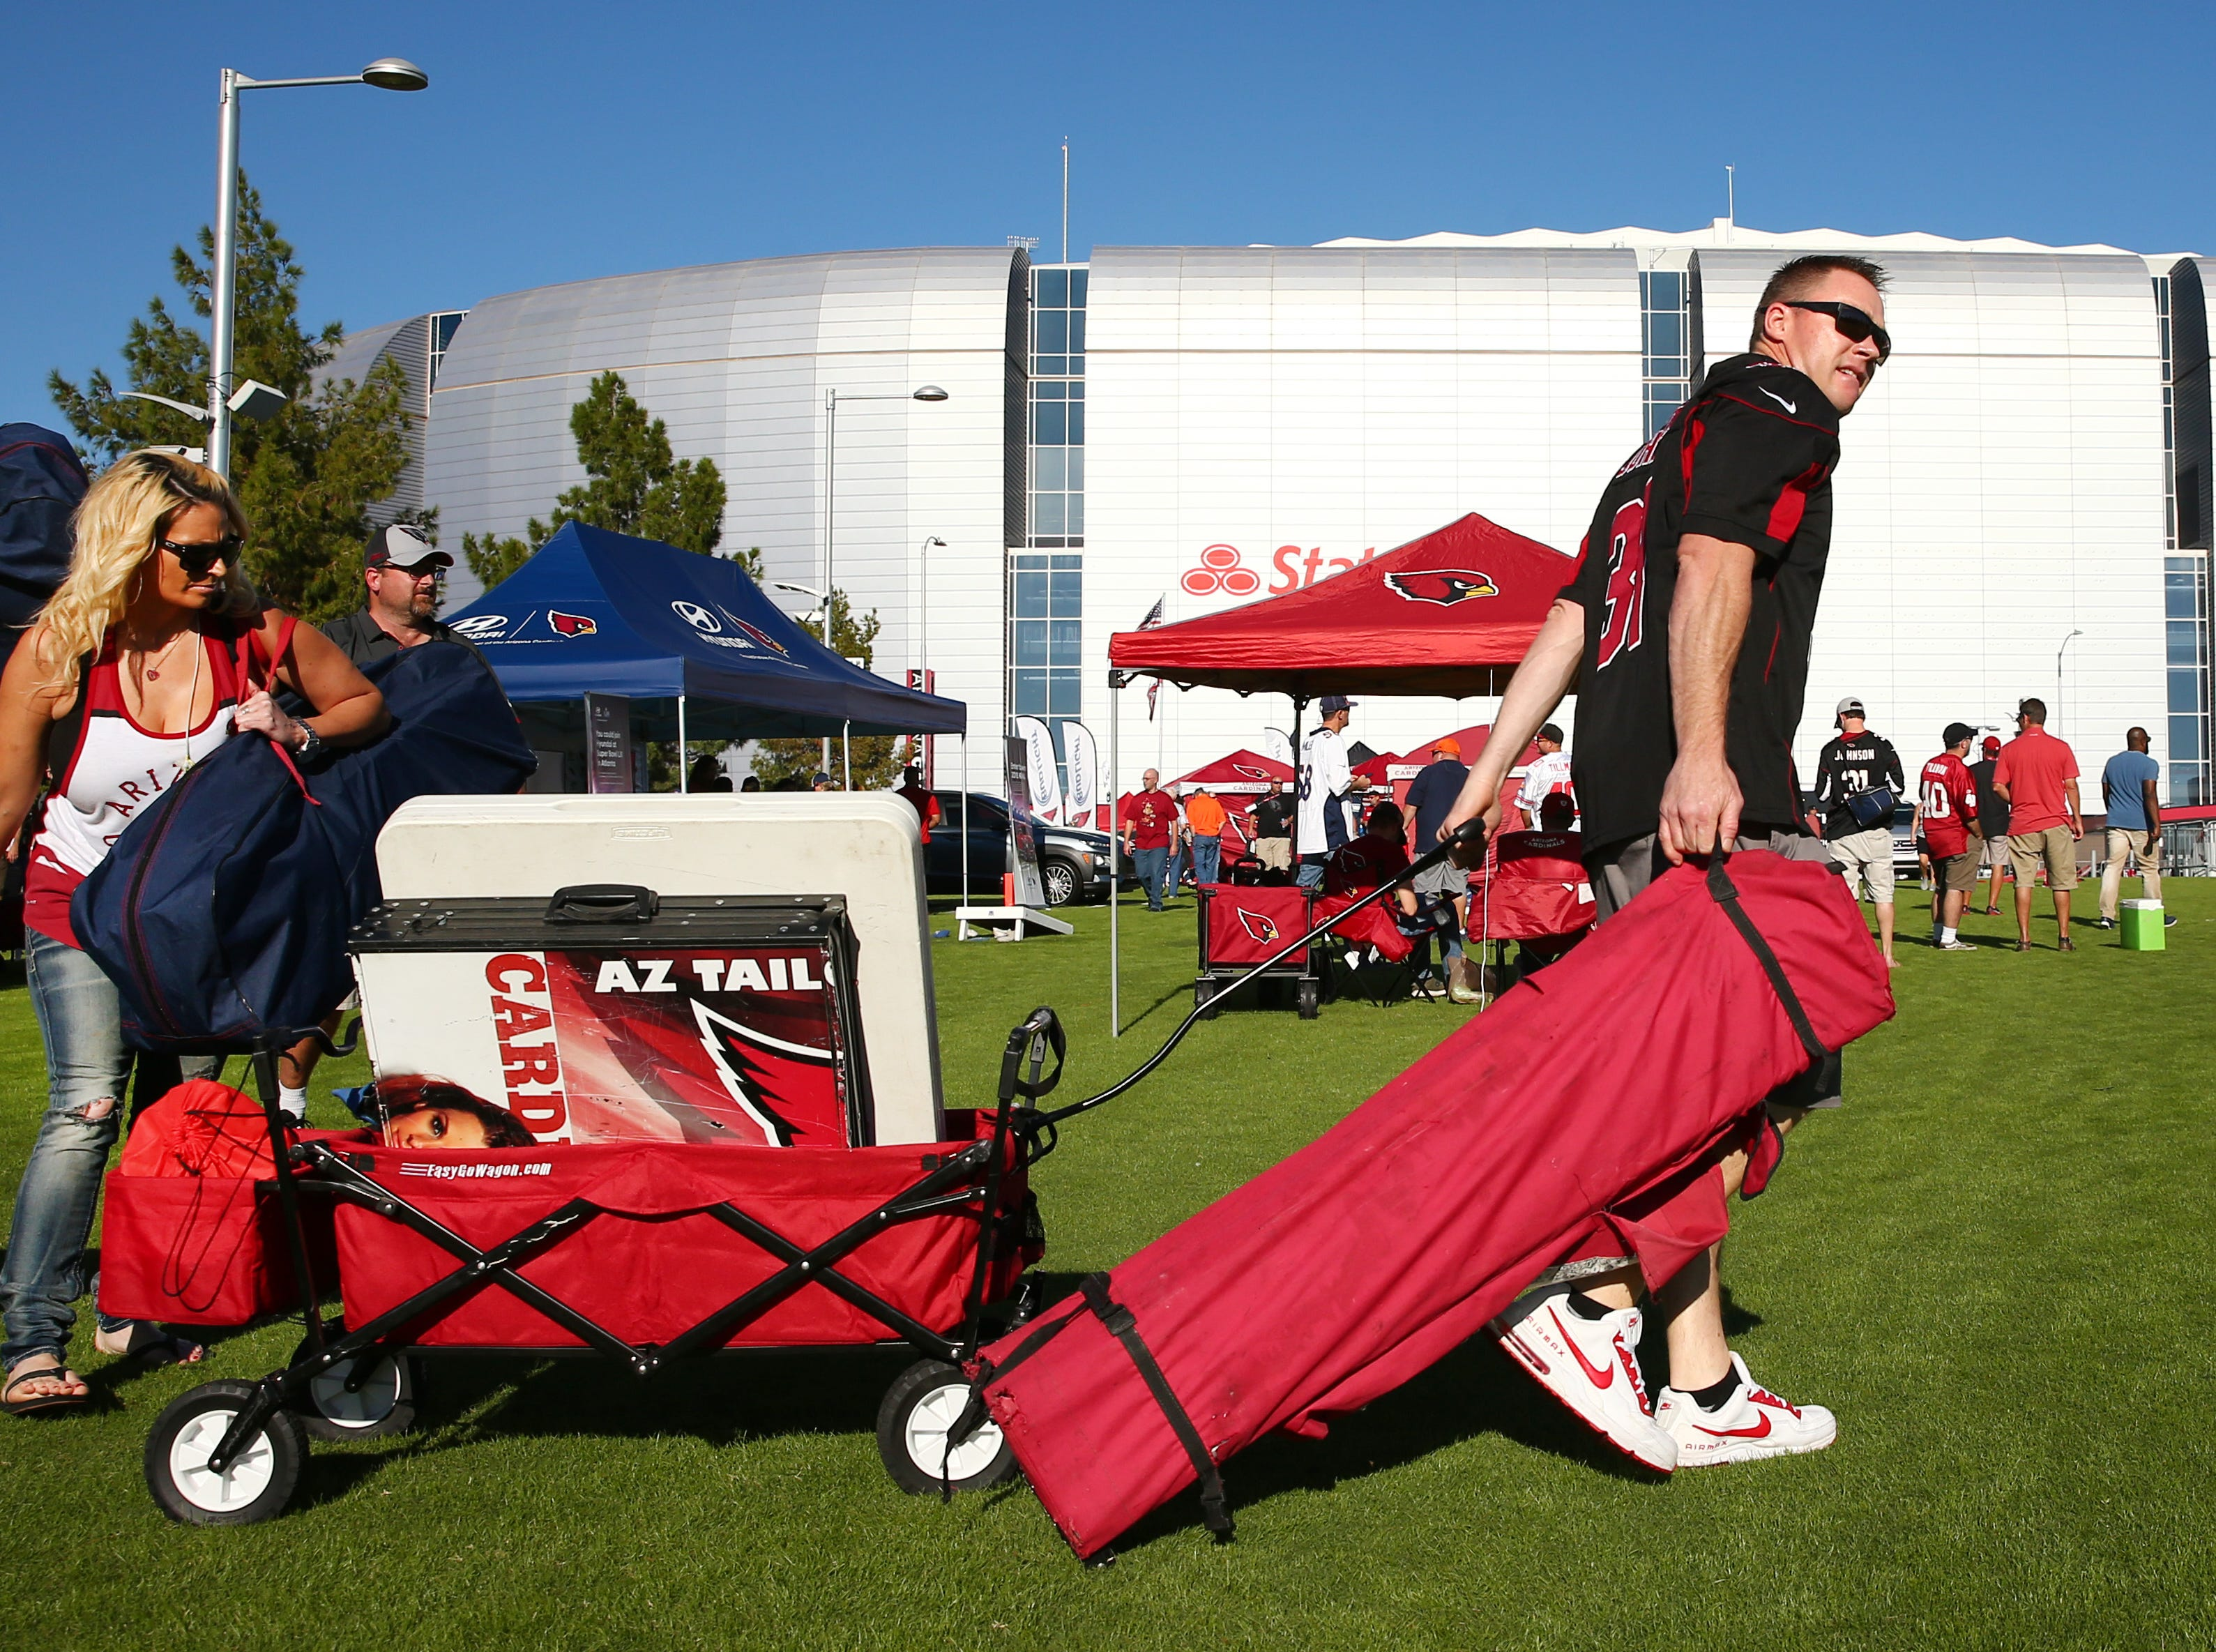 Arizona Cardinals fans April Ward (left) and Jason Stewart from Cottonwood arrive to tailgate 90-minutes before kick-off against the Denver Broncos due to traffic delays at State Farm Stadium in Glendale, Ariz.